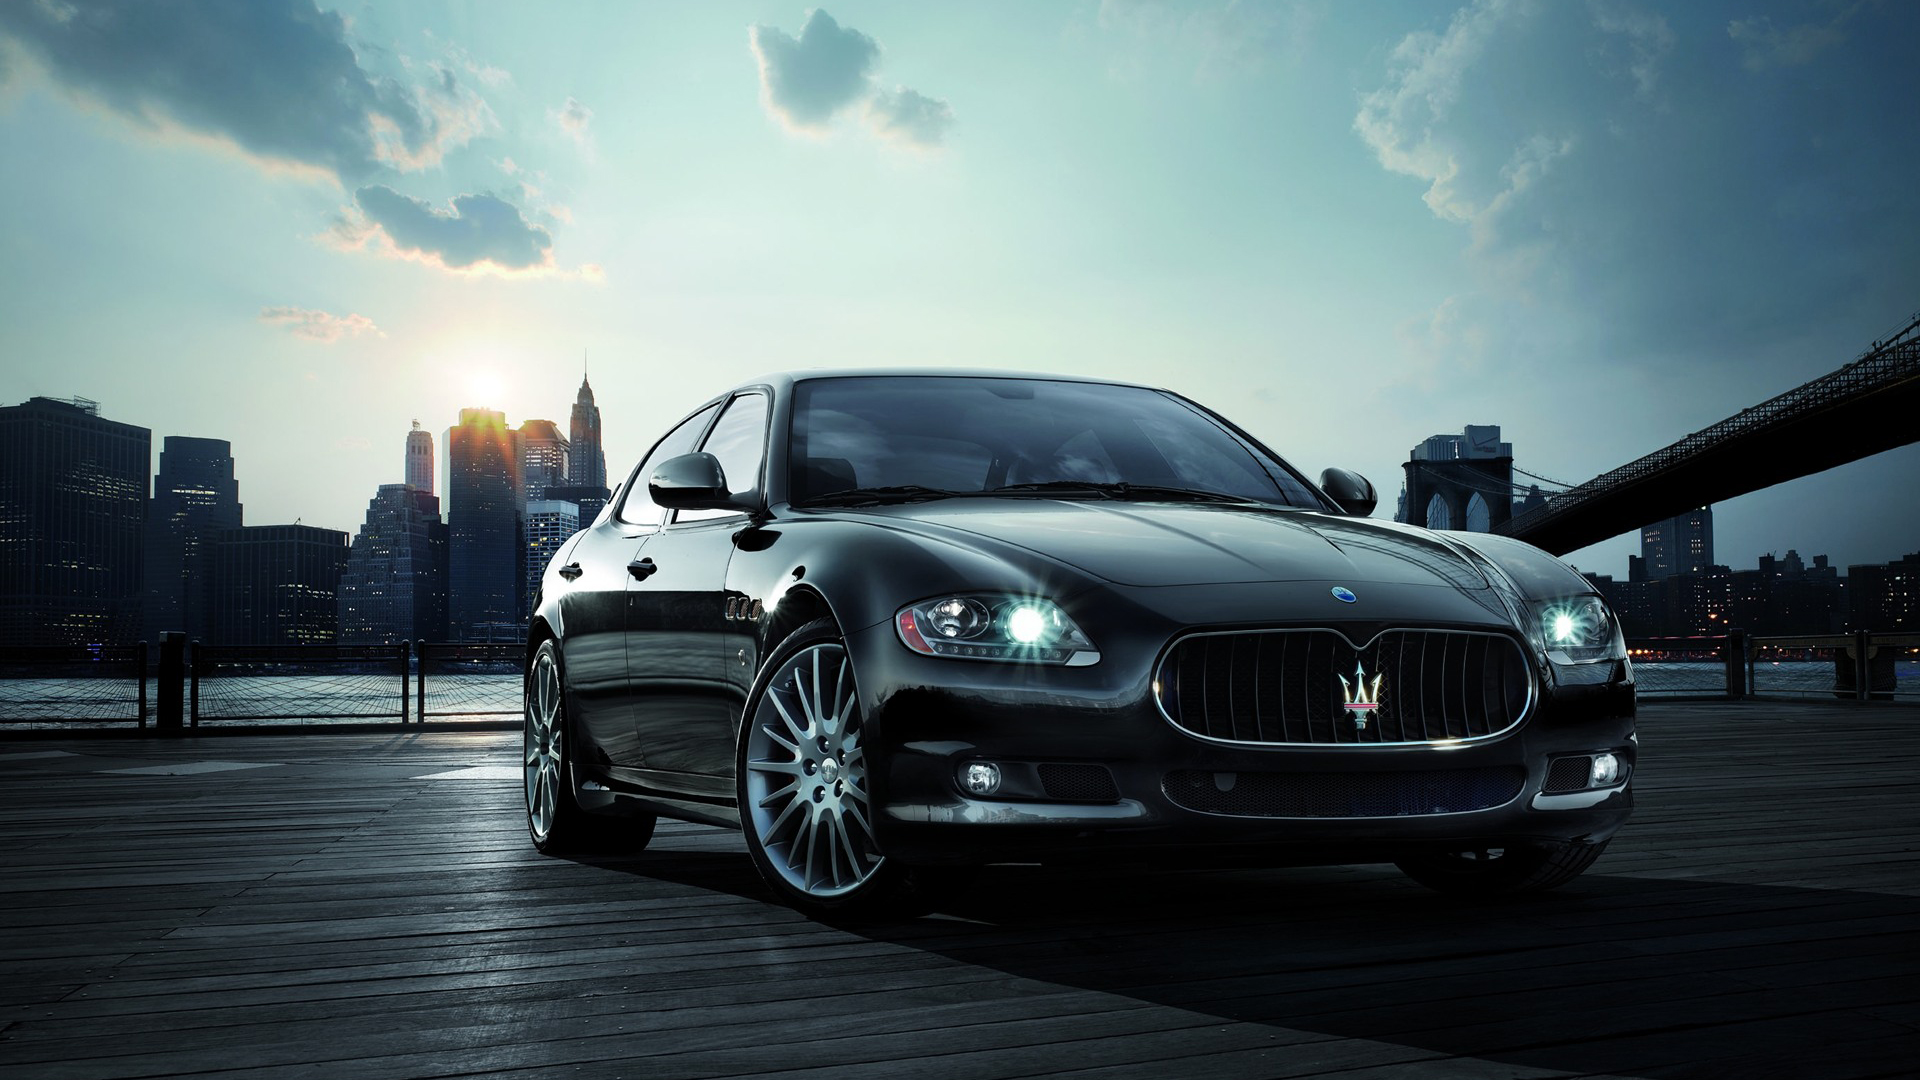 Mother Quote Wallpaper Full Hd Wallpapers 1080p Cars Free Download Pixelstalk Net